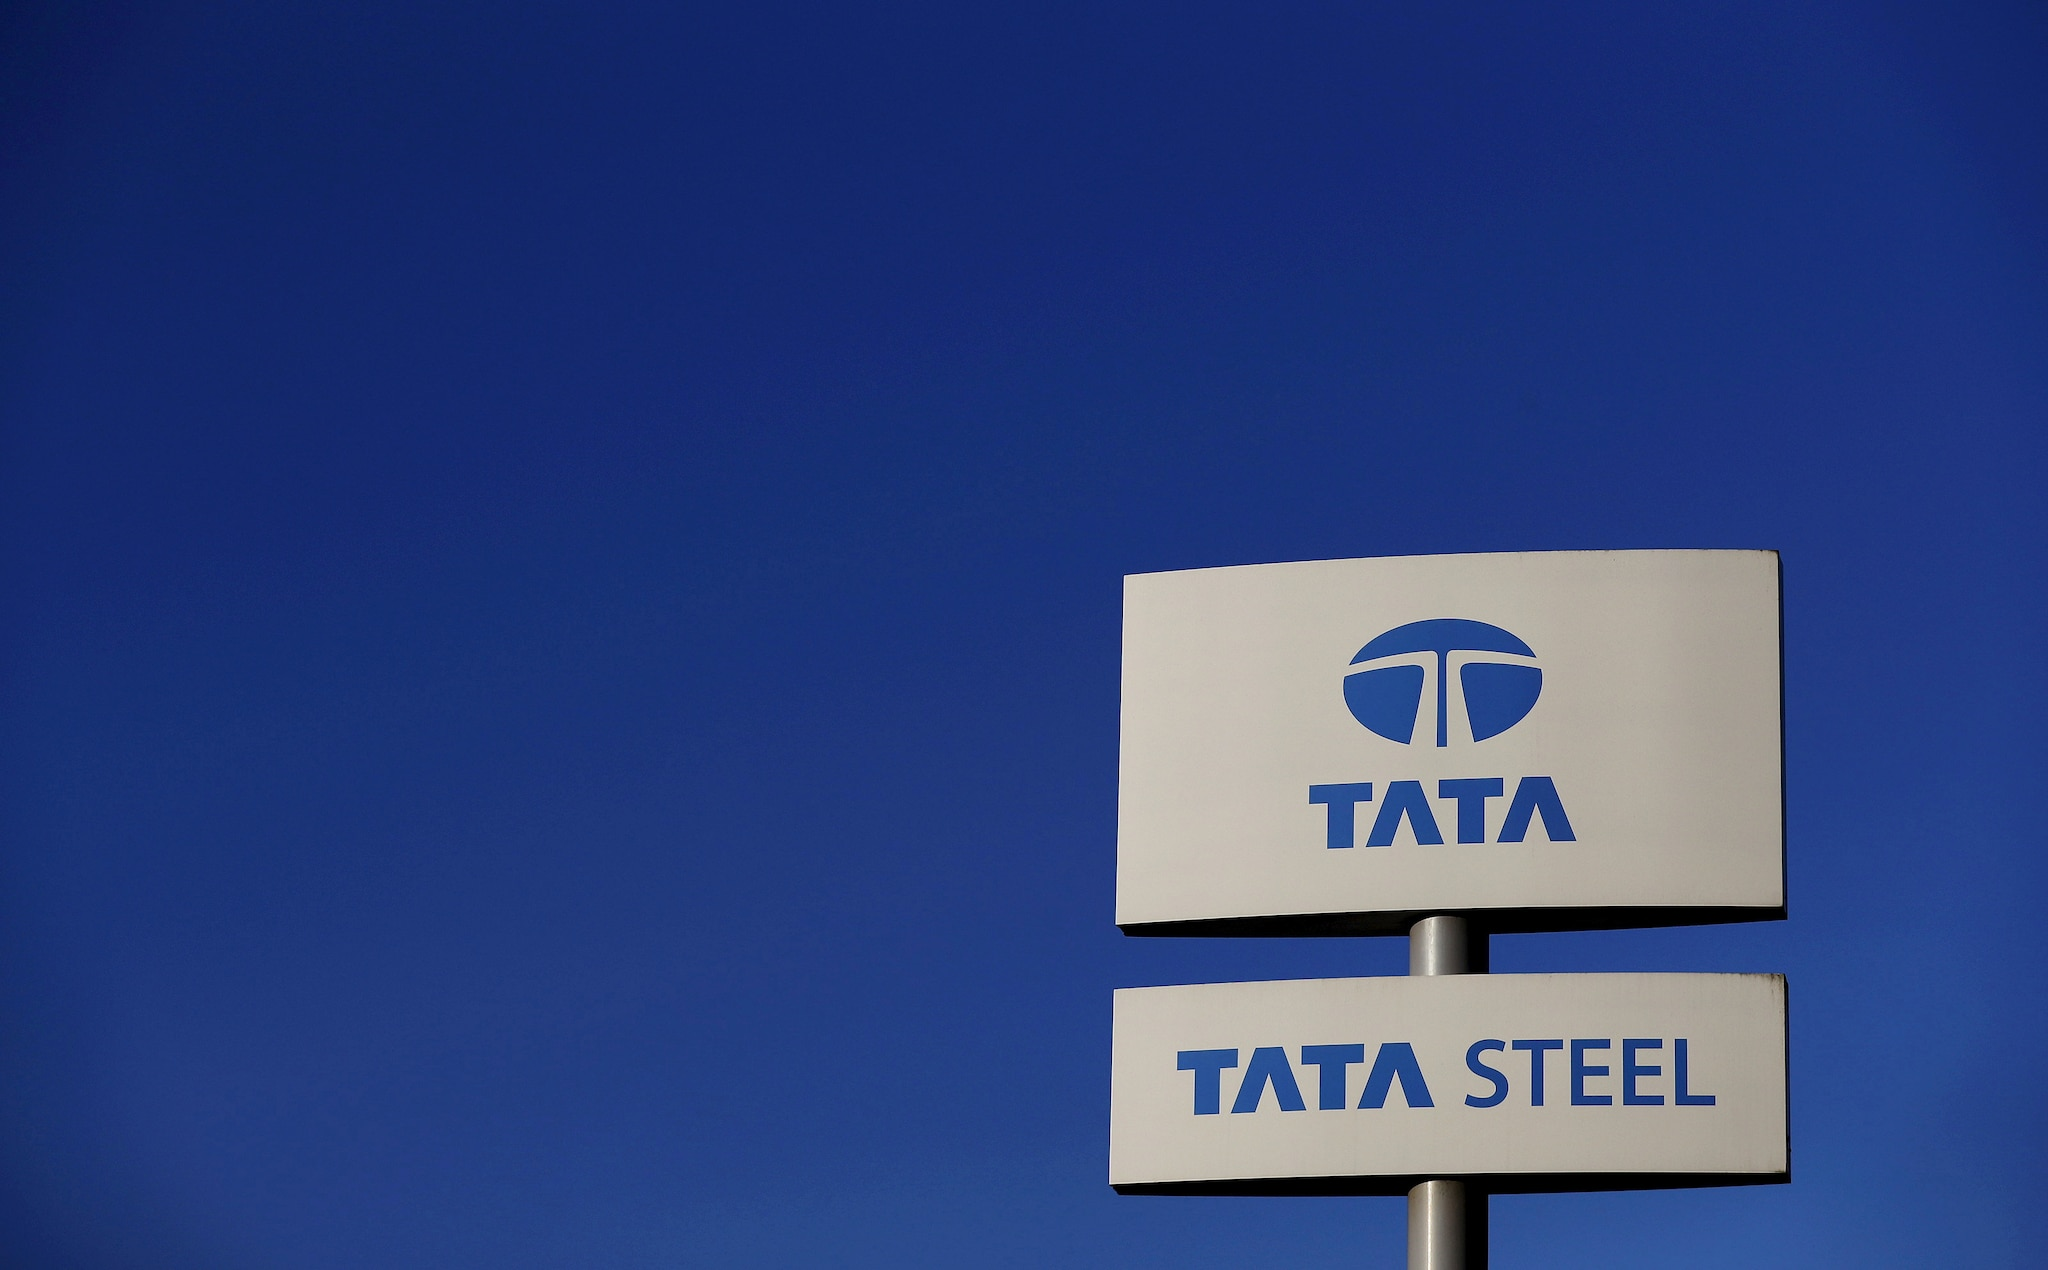 Tata Steel: S&P Global Ratings on Tuesday said it has revised its outlook on Tata Steel to positive from stable. (Image: Reuters)